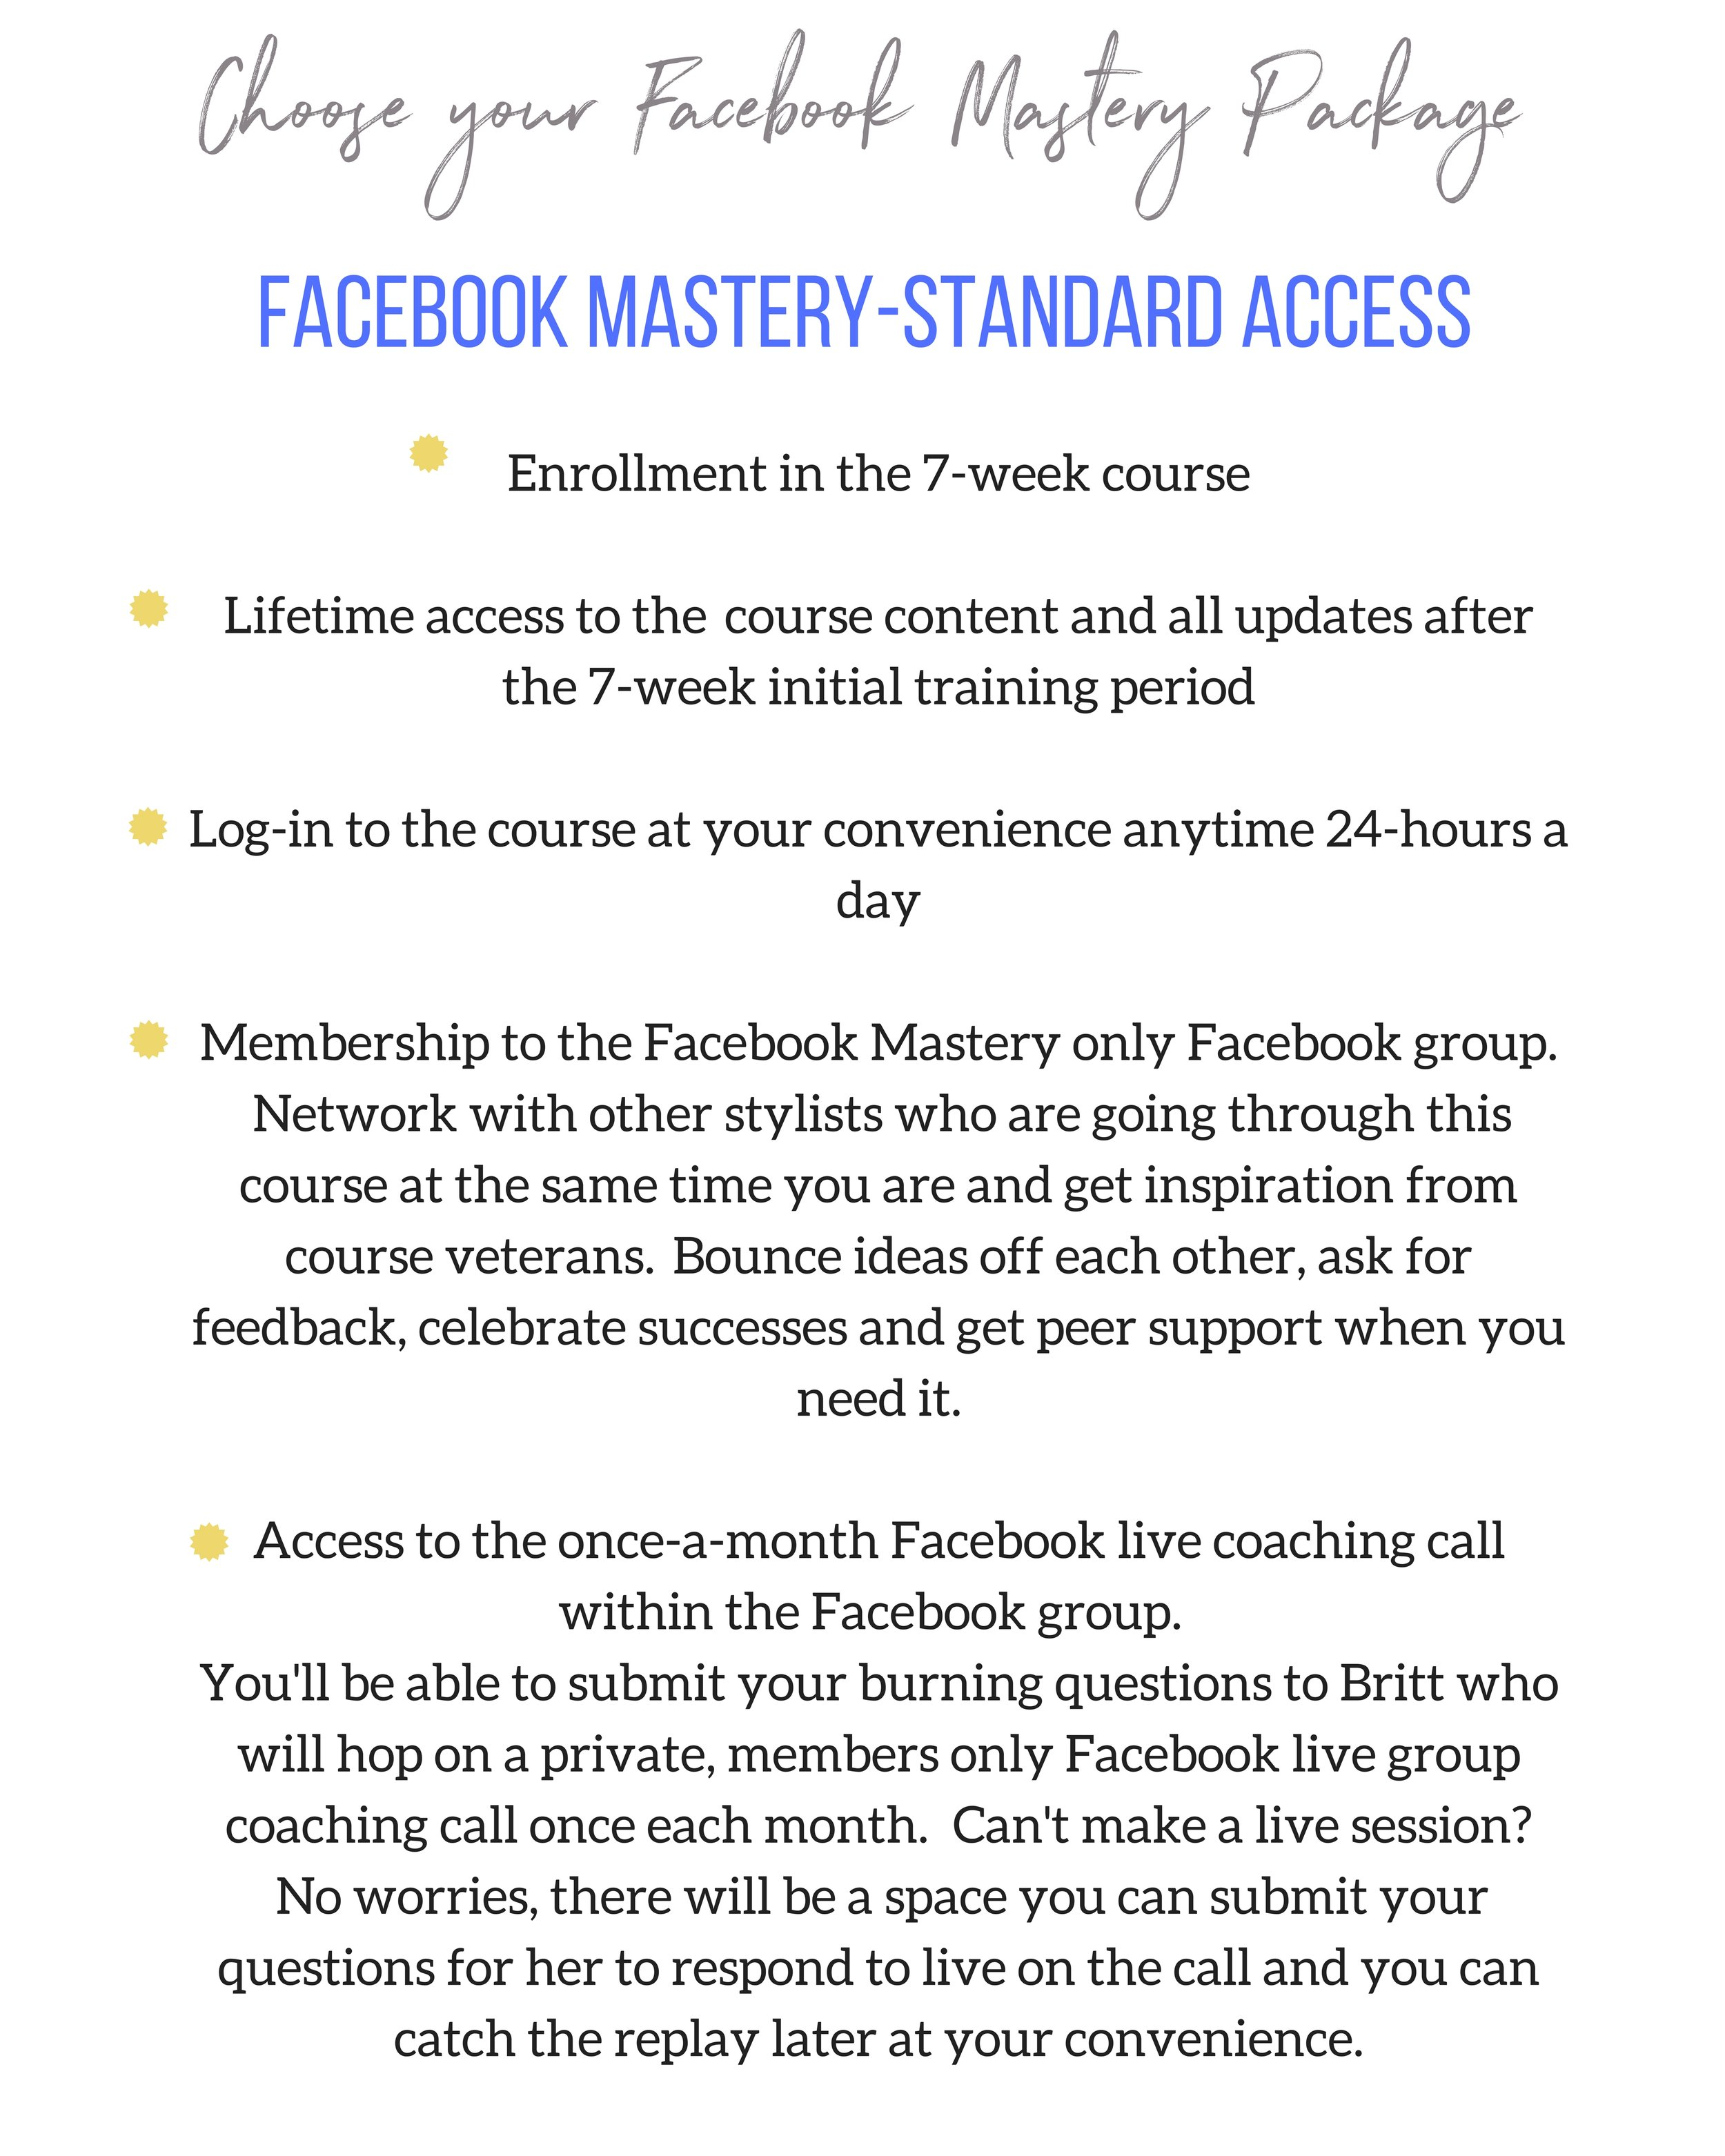 FB Mastery Sales Page-Short Form (3).jpg